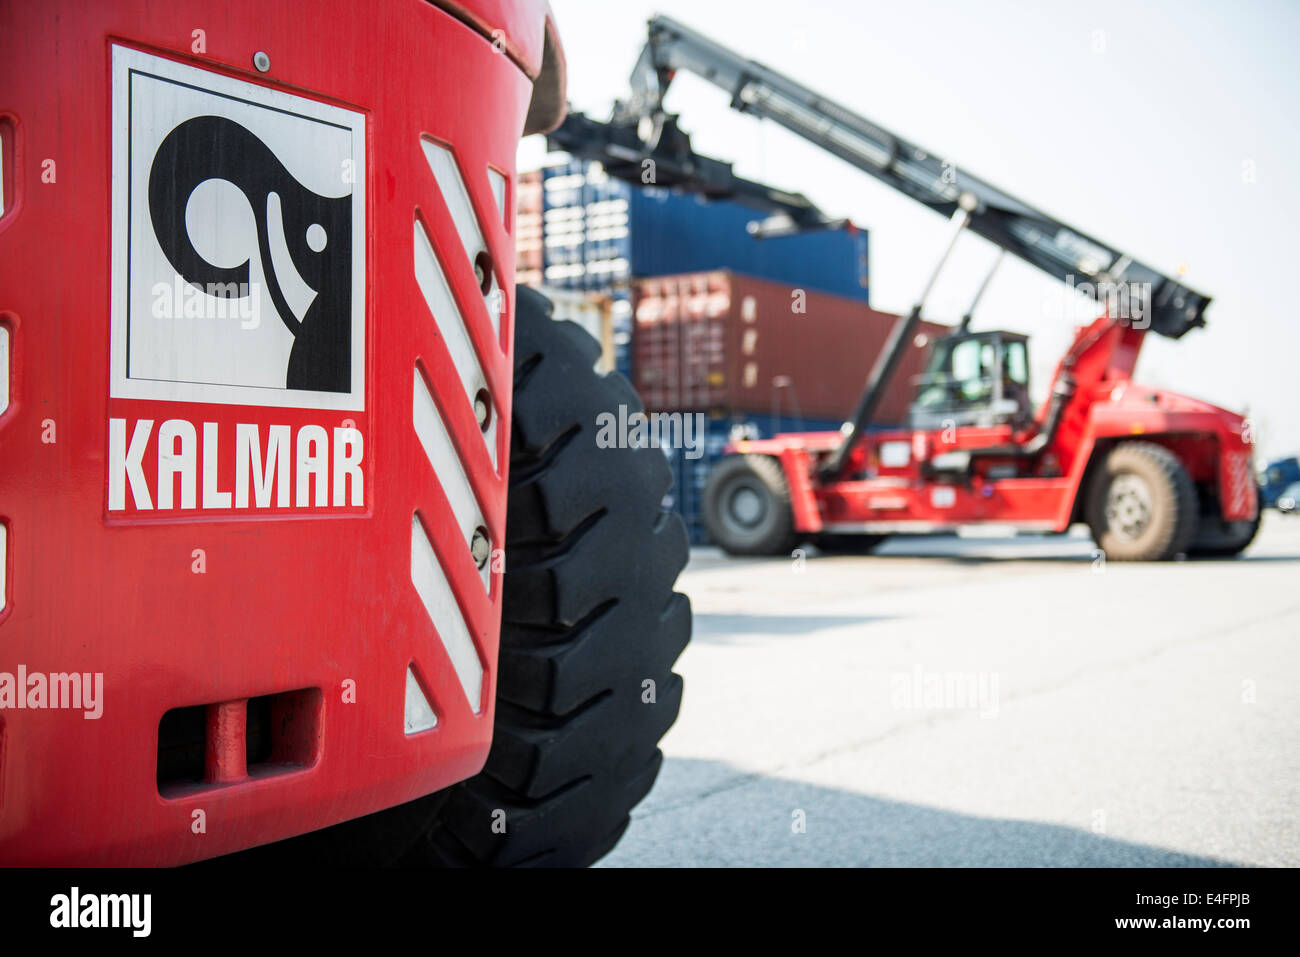 Kalmar - Reach Stackers at Container Terminal - Stock Image